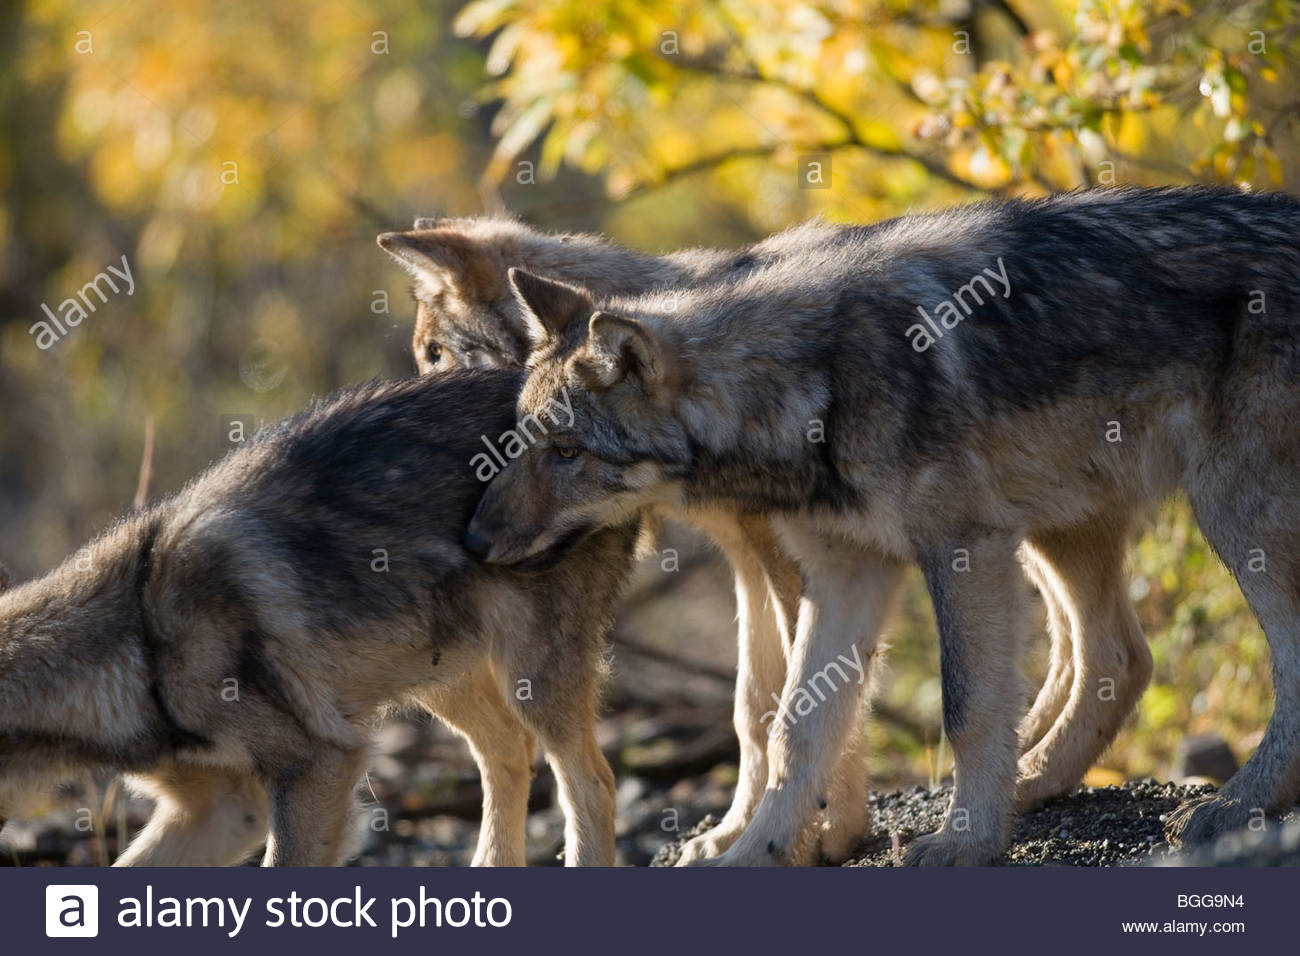 Wolf, Canis lupus, pups, autumn, alpine tundra, Grant Creek pack, Denali National Park, Alaska, horizontal, wild - Stock Image